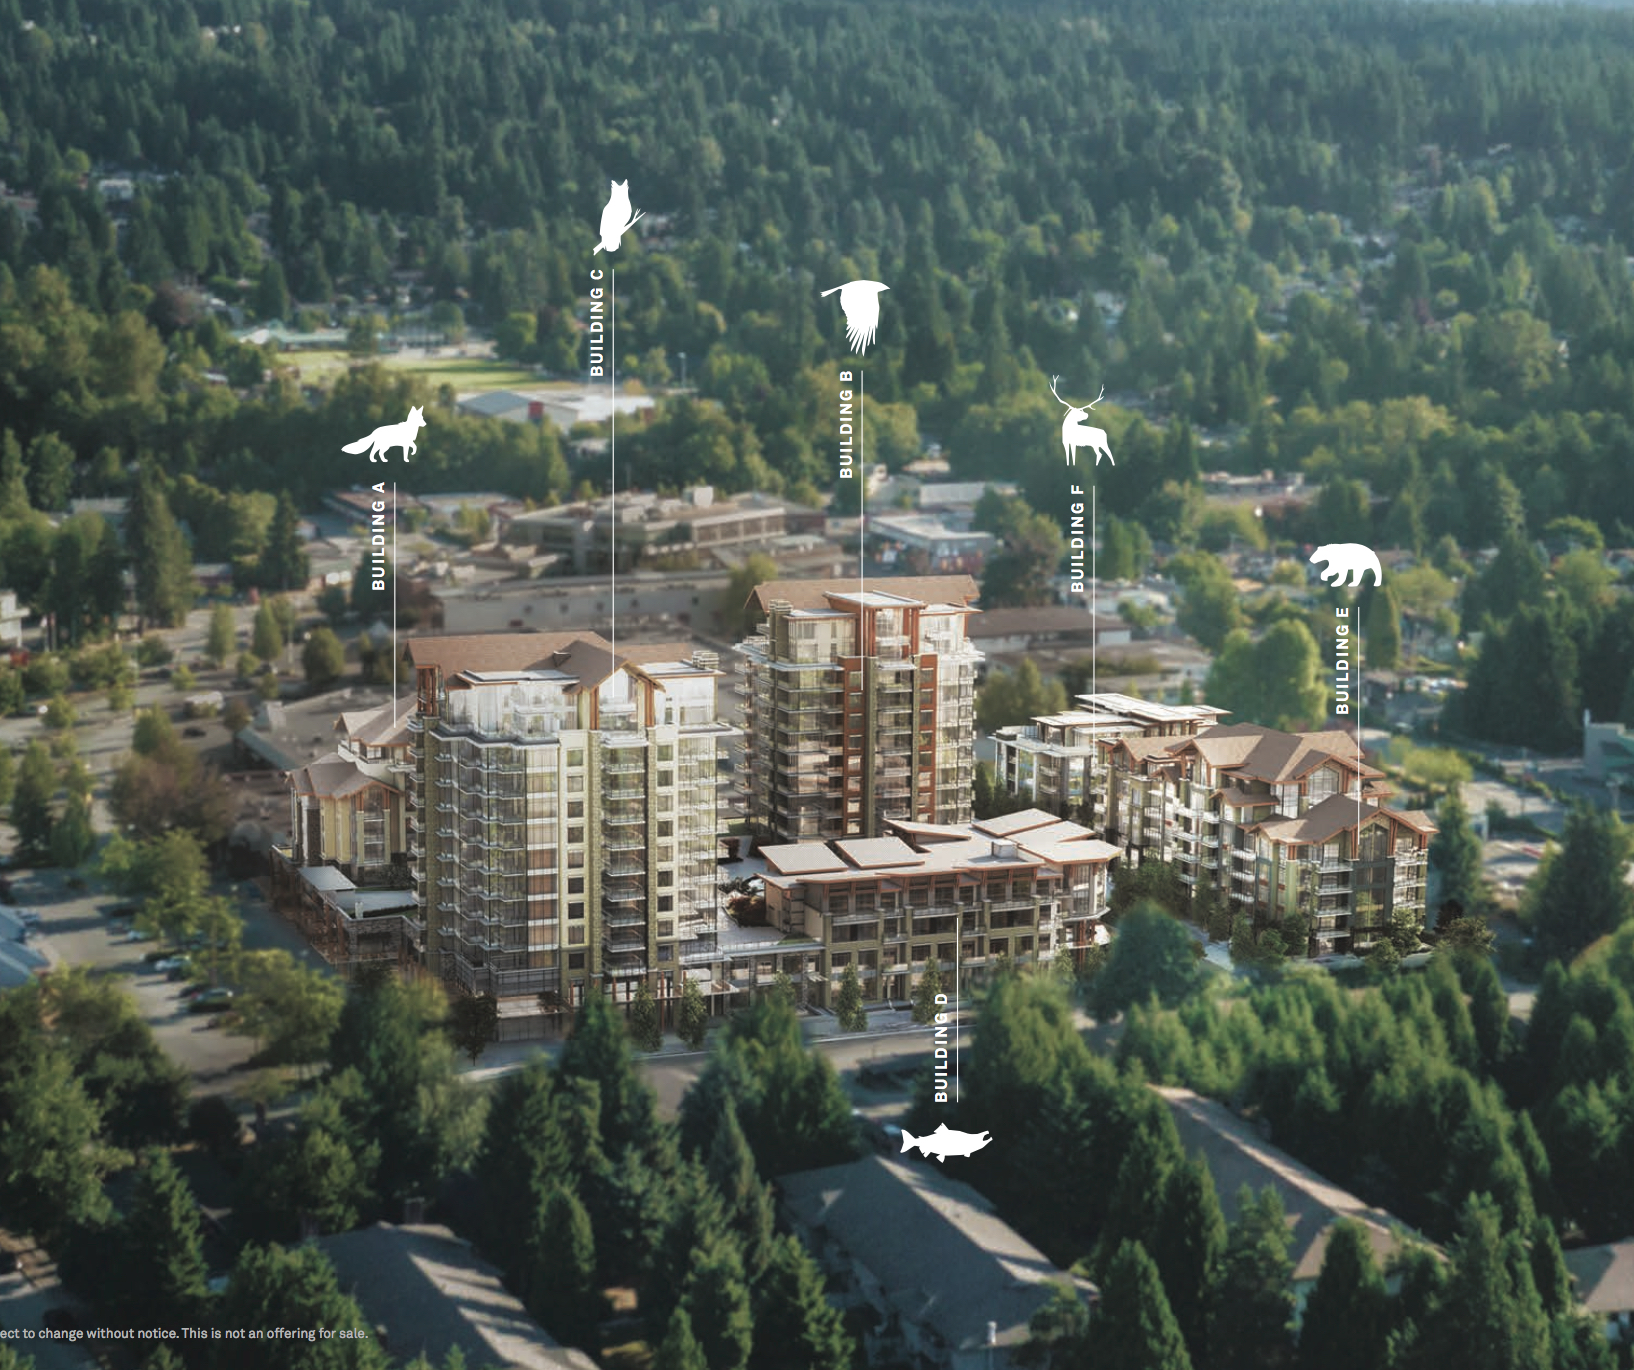 The Residences at Lynn Valley phase 2 coming this Spring. www.lynnvalleyresidences.com.